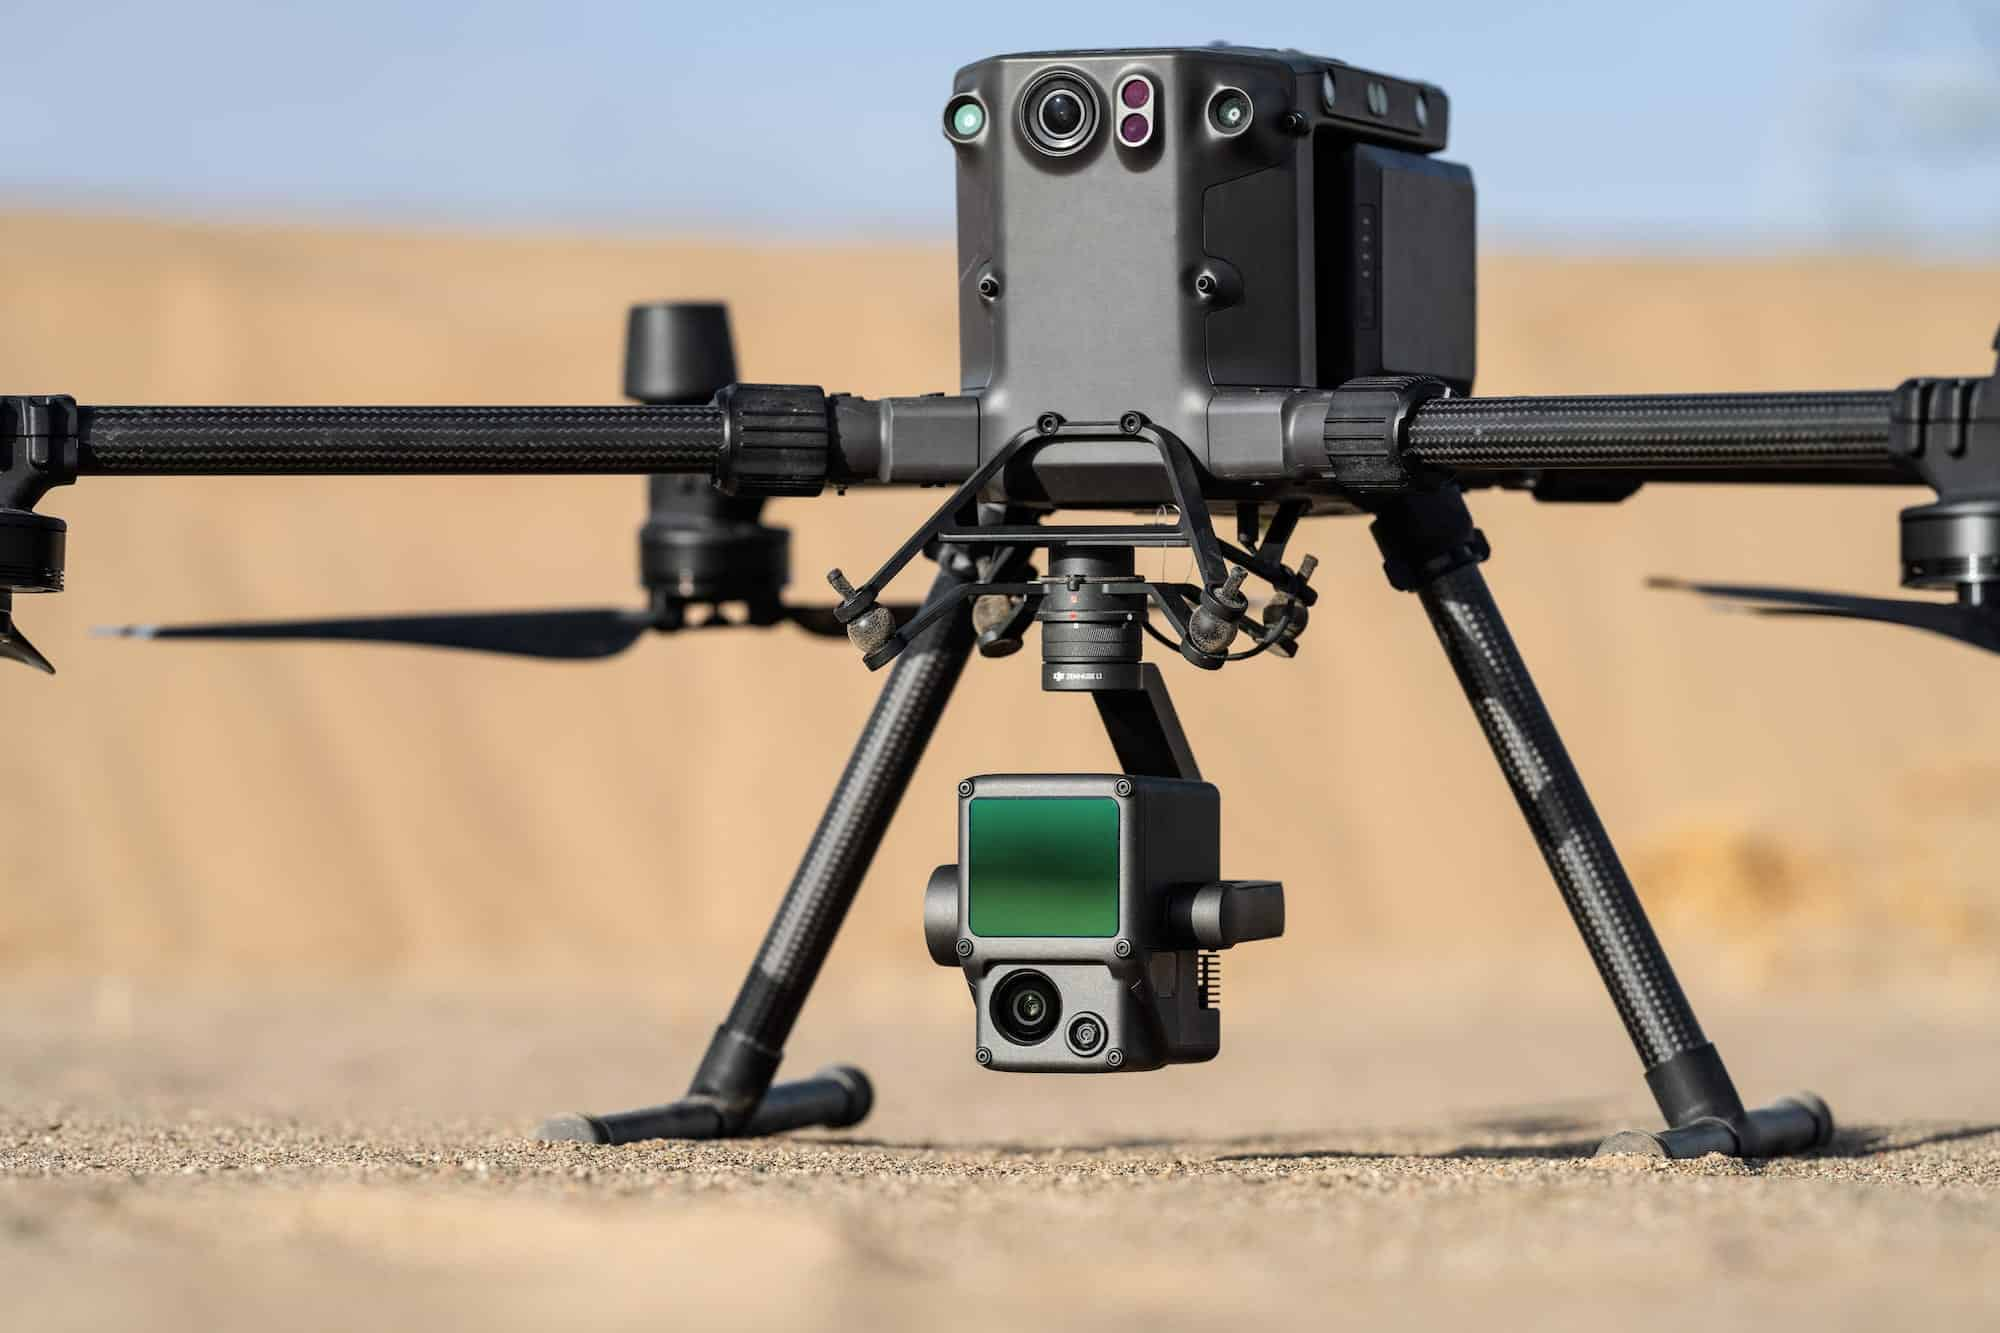 New DJI Zenmuse P1 and L1 payloads for DJI Matrice 300